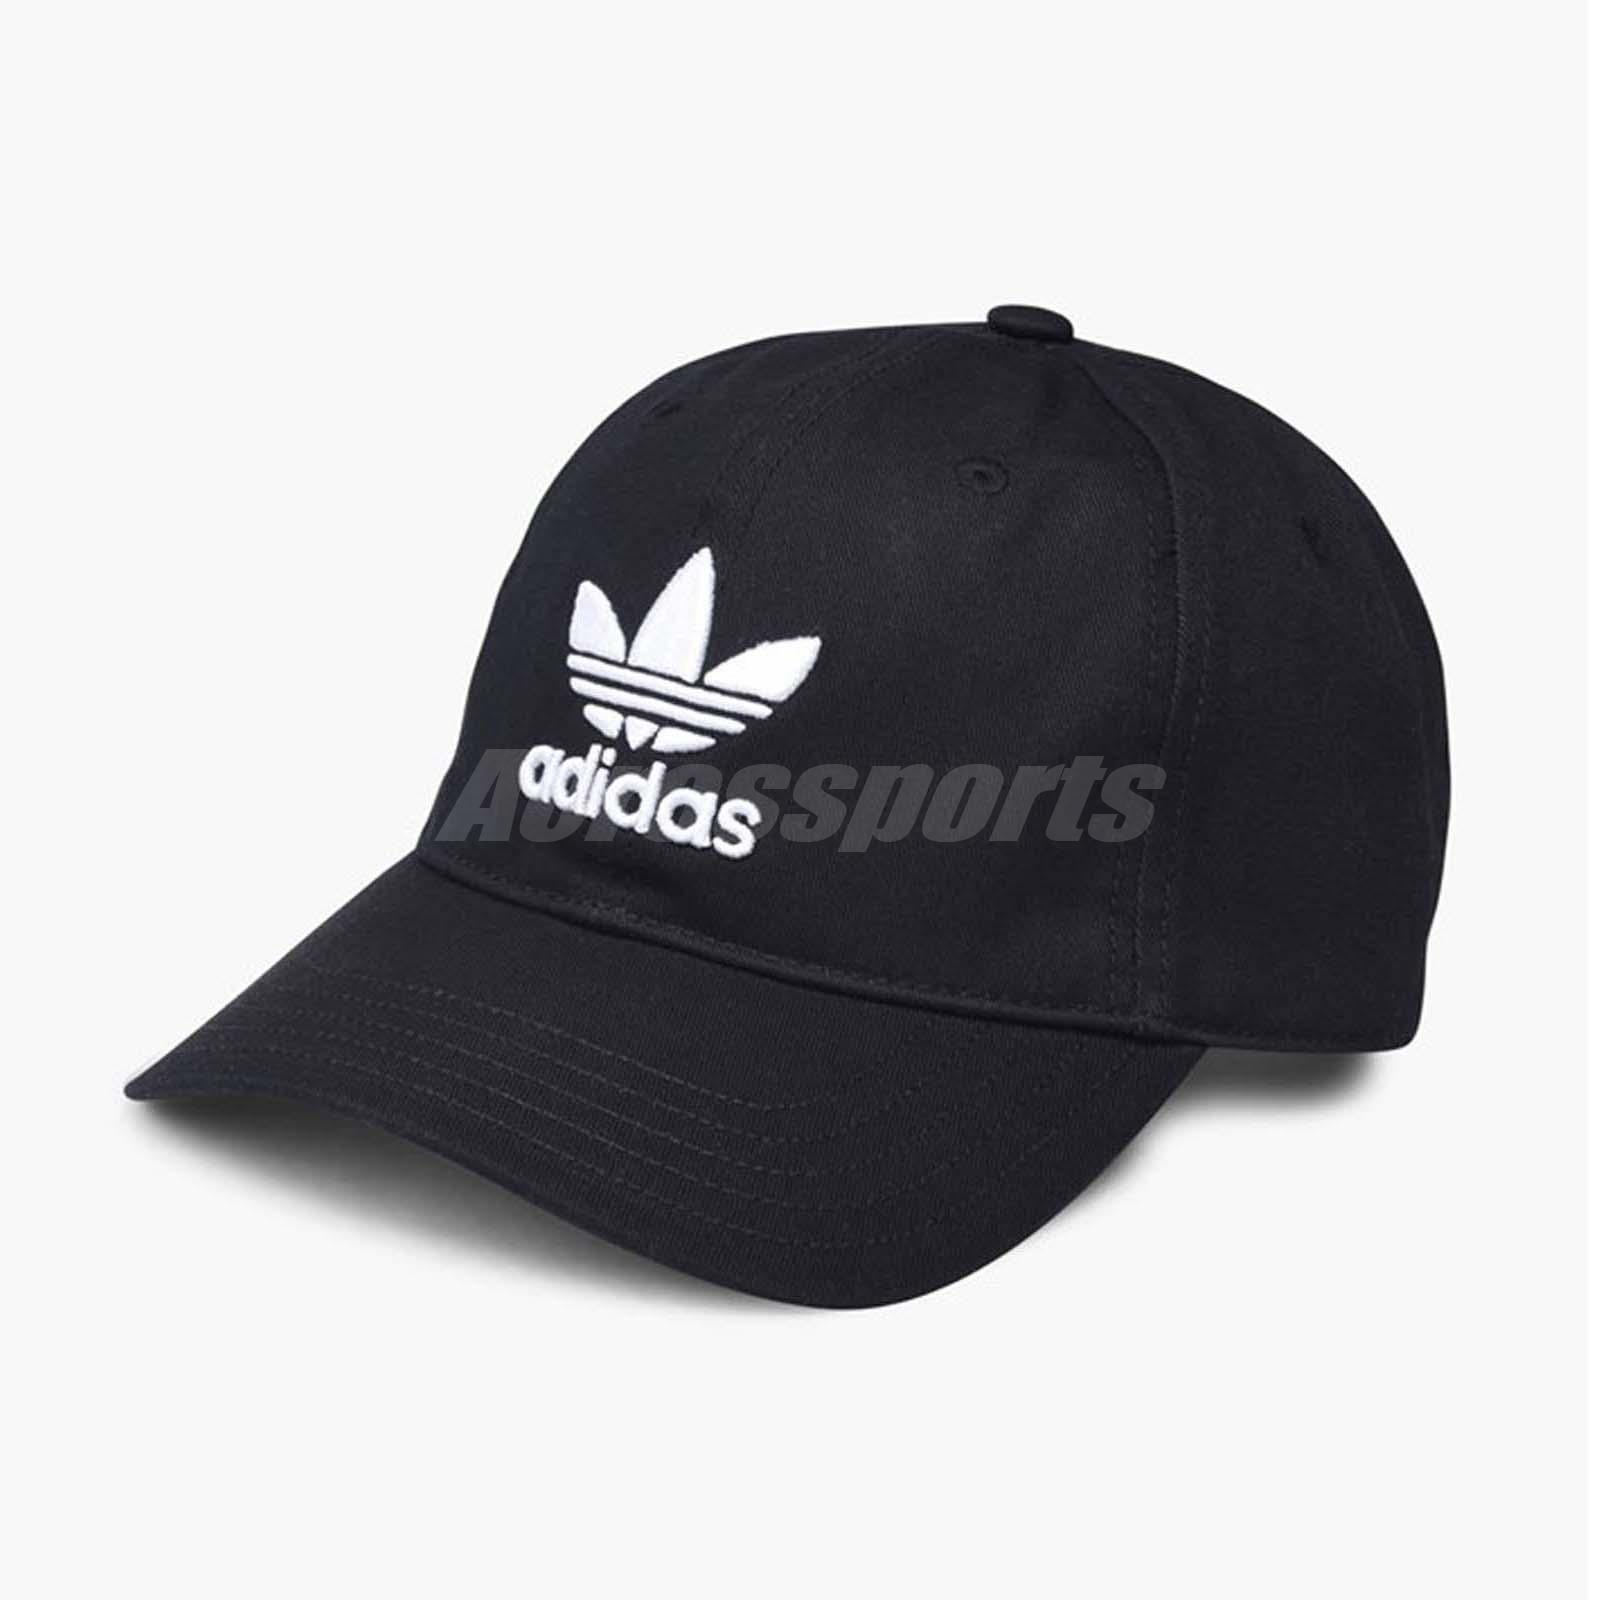 483f6c5a32072 adidas Originals Trefoil Classic Cap Black White Adjustable Strap Hat BK7277